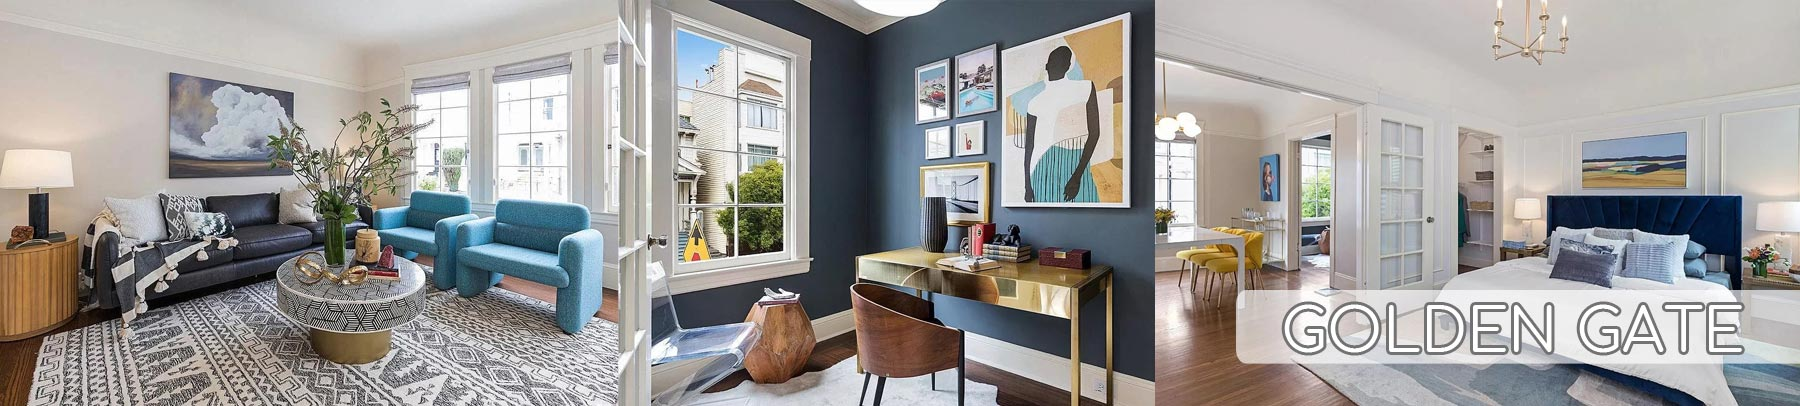 Golden Gate staging project